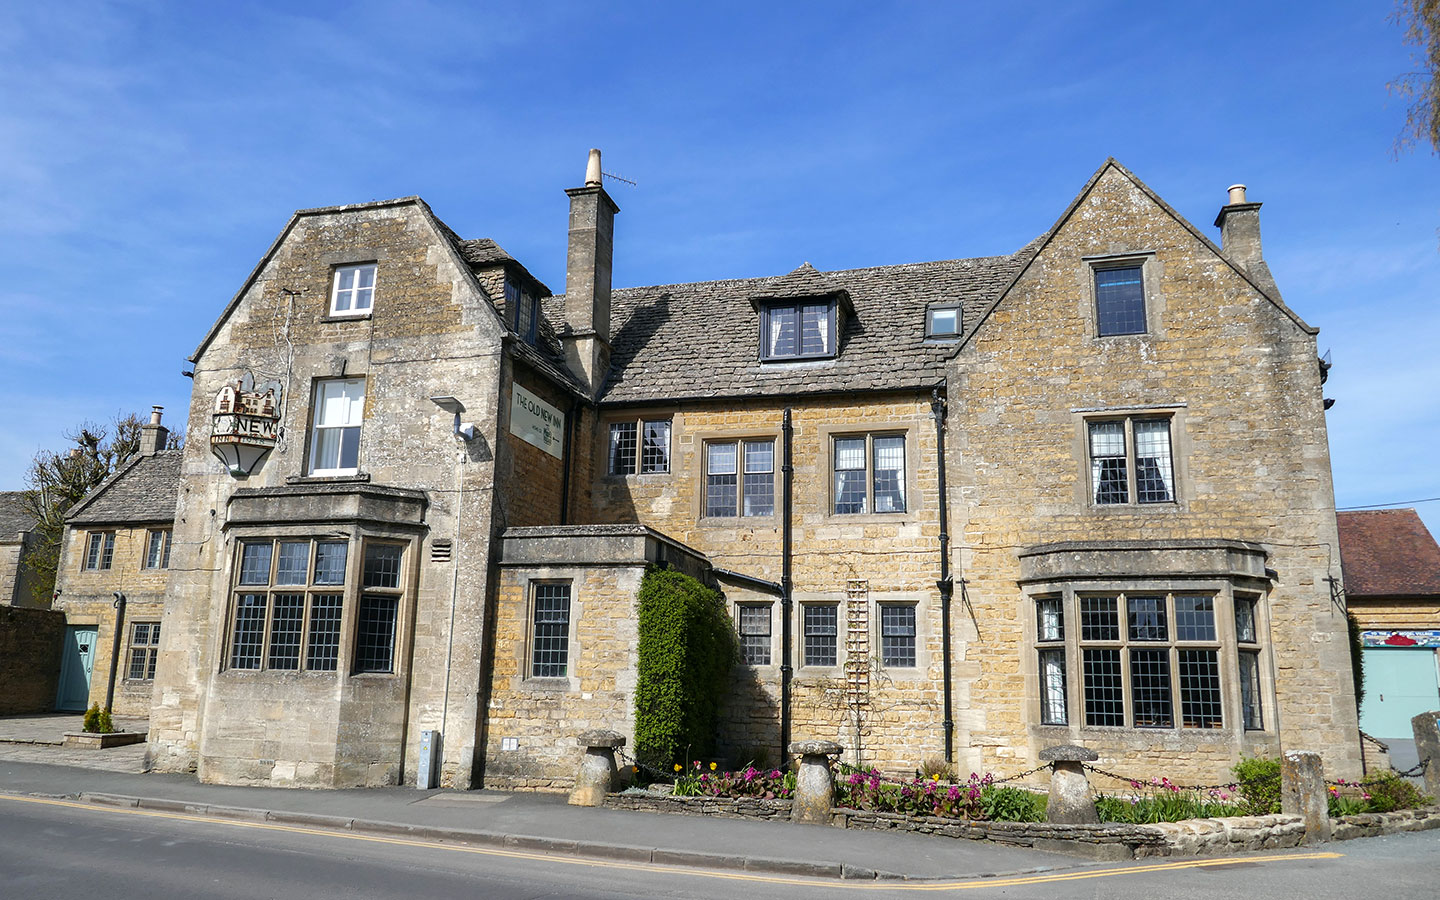 The Old New Inn in Bourton-on-the-Water